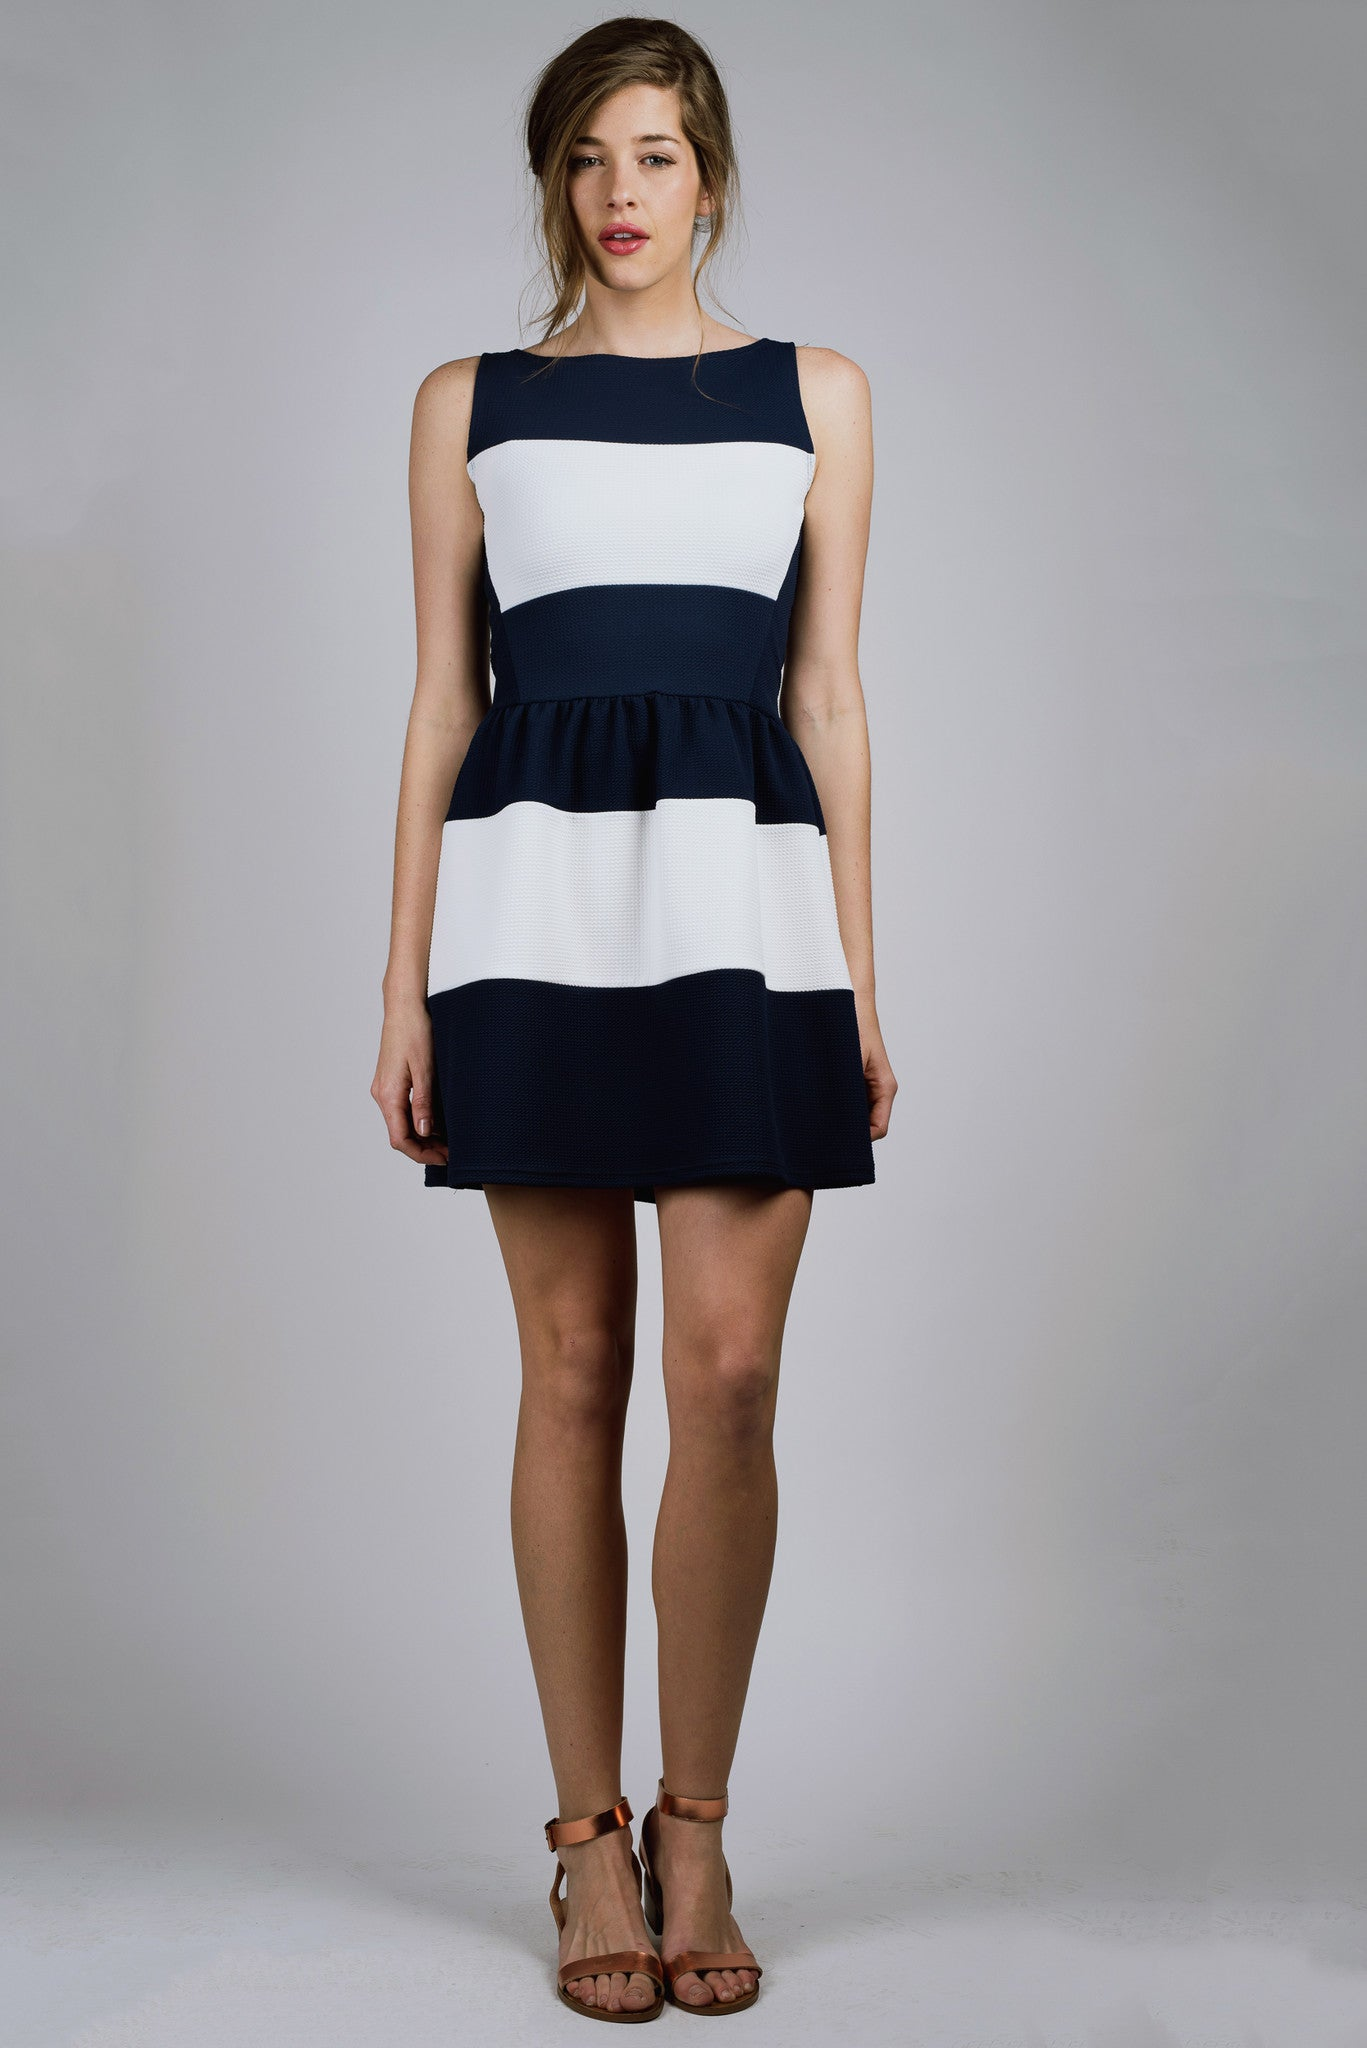 Navy and White, Geometric Print, Striped Party Dress, Spring